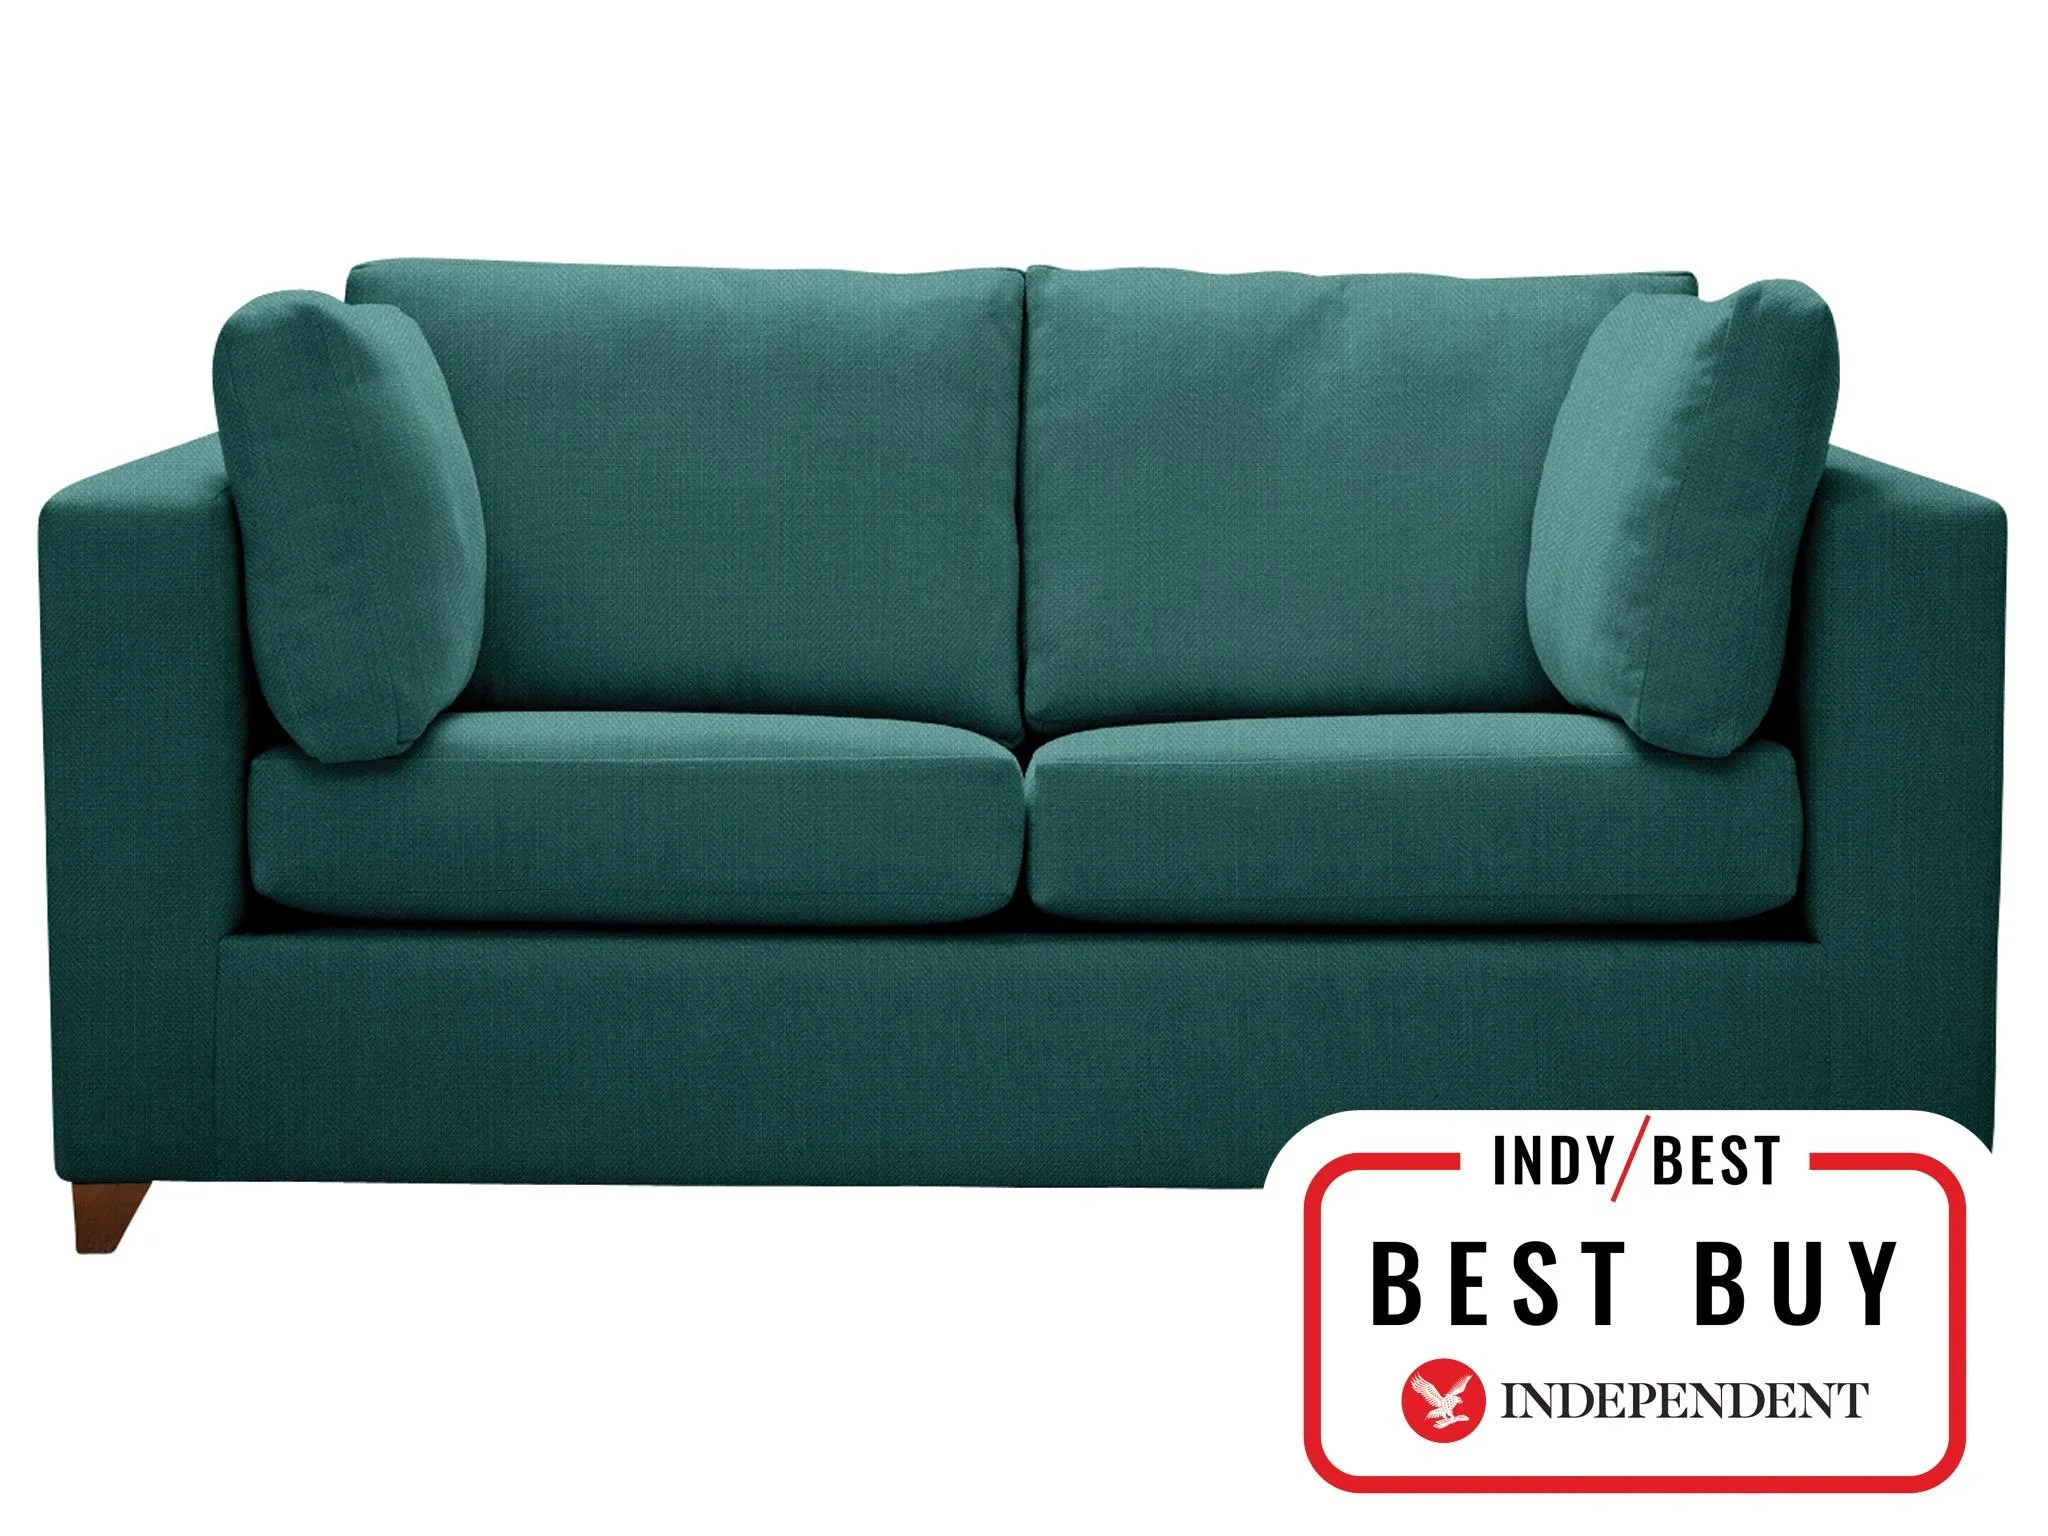 Z Beds For Adults 12 Best Sofa Beds The Independent